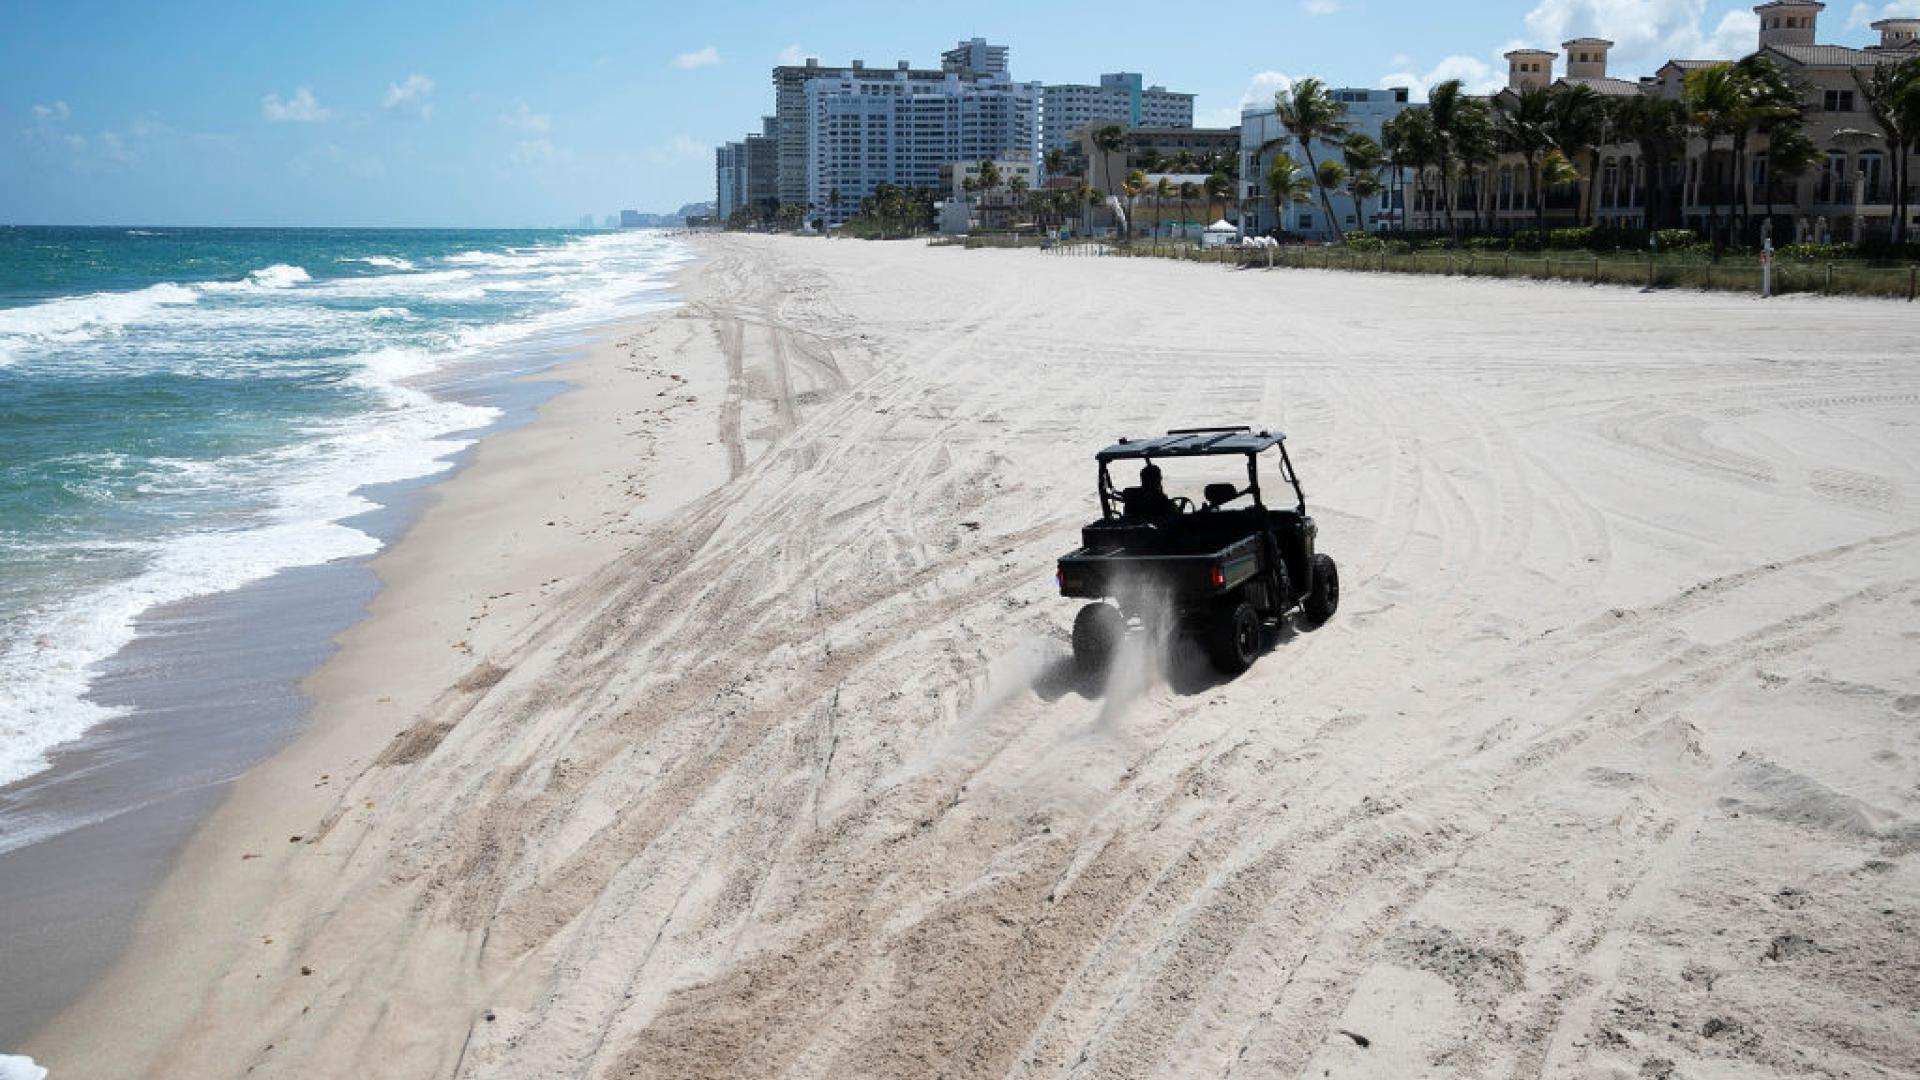 A Lauderdale-by-the-Sea police officer drives along an empty beach as the effort to stop the coronavirus pandemic continues on March 20, 2020 in Pompano Beach, Florida.